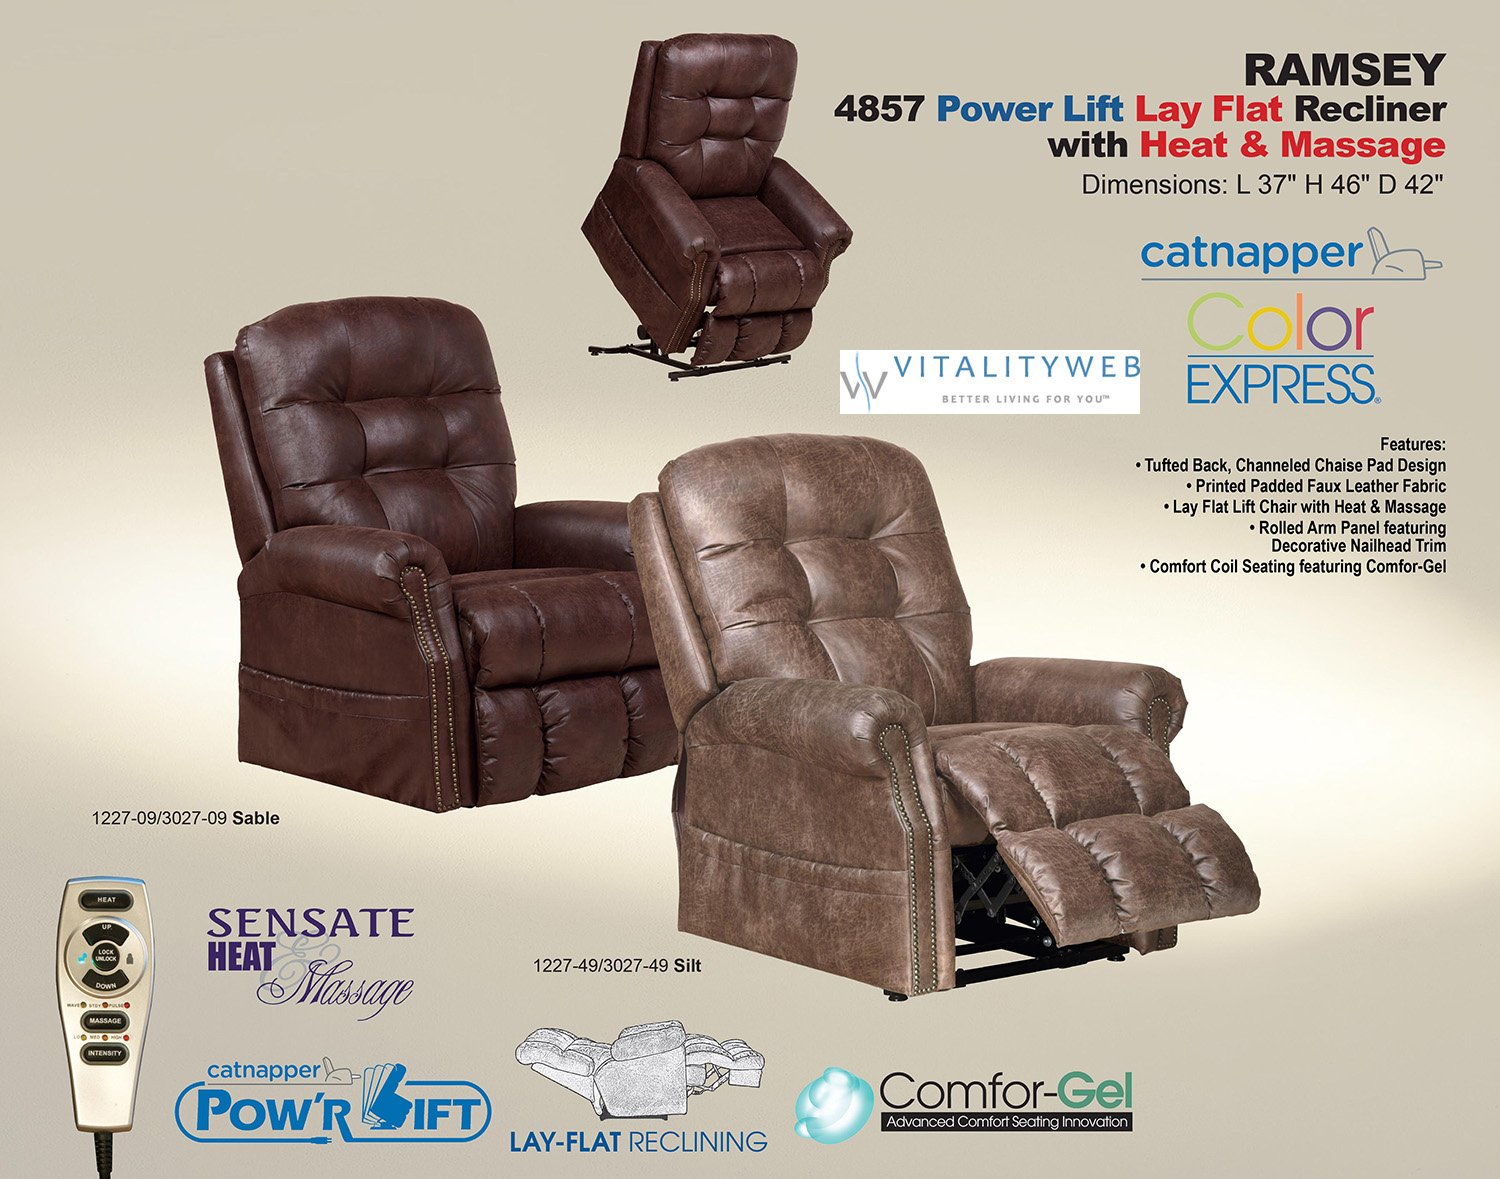 Amazon.com Catnapper Ramsey 4857 Power Full Lay Flat Lift Chair Recliner with Heat and Massage - Easy Care Faux Leather Vinyl - Silt Kitchen u0026 Dining & Amazon.com: Catnapper Ramsey 4857 Power Full Lay Flat Lift Chair ... islam-shia.org